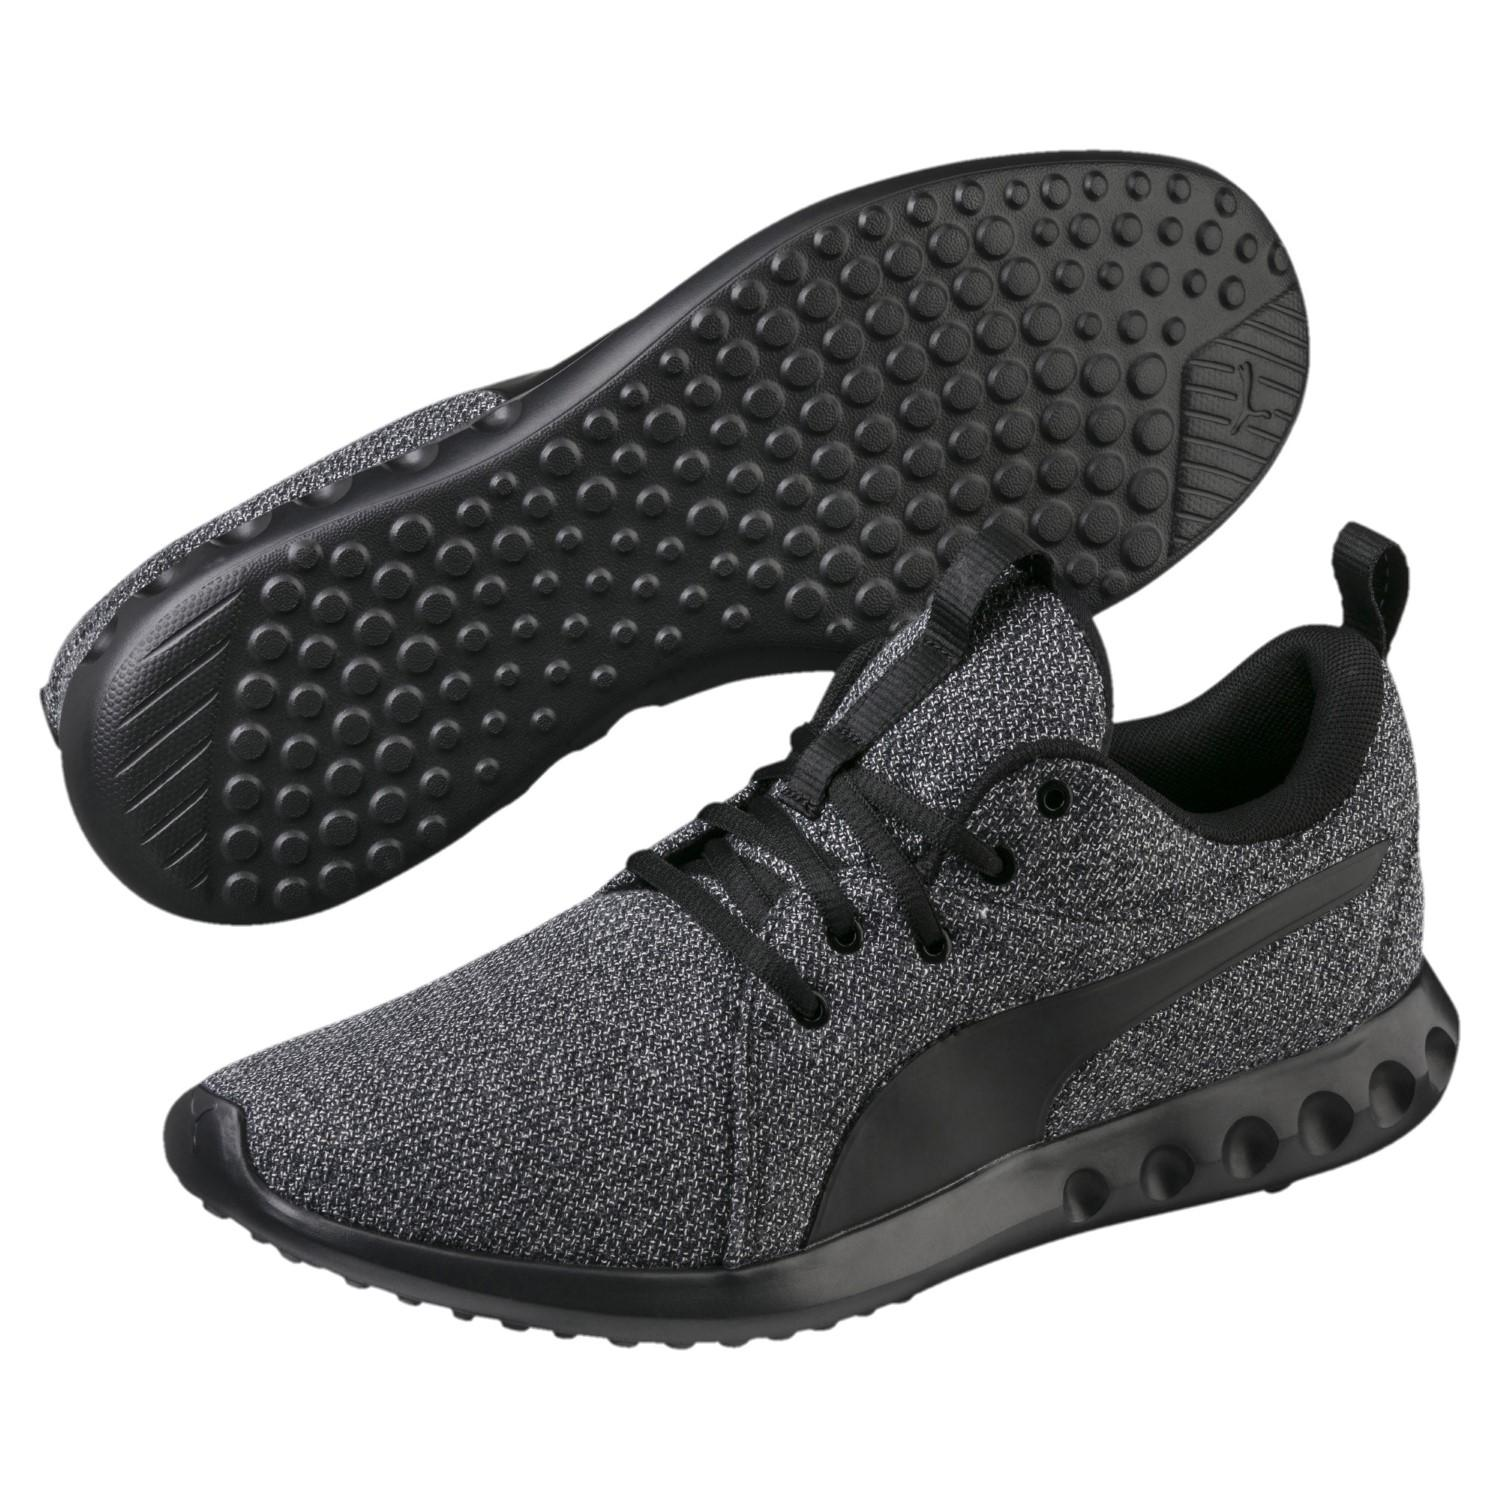 6969fb1f0a9 Lyst - PUMA Carson 2 Knit Training Shoes in Black for Men